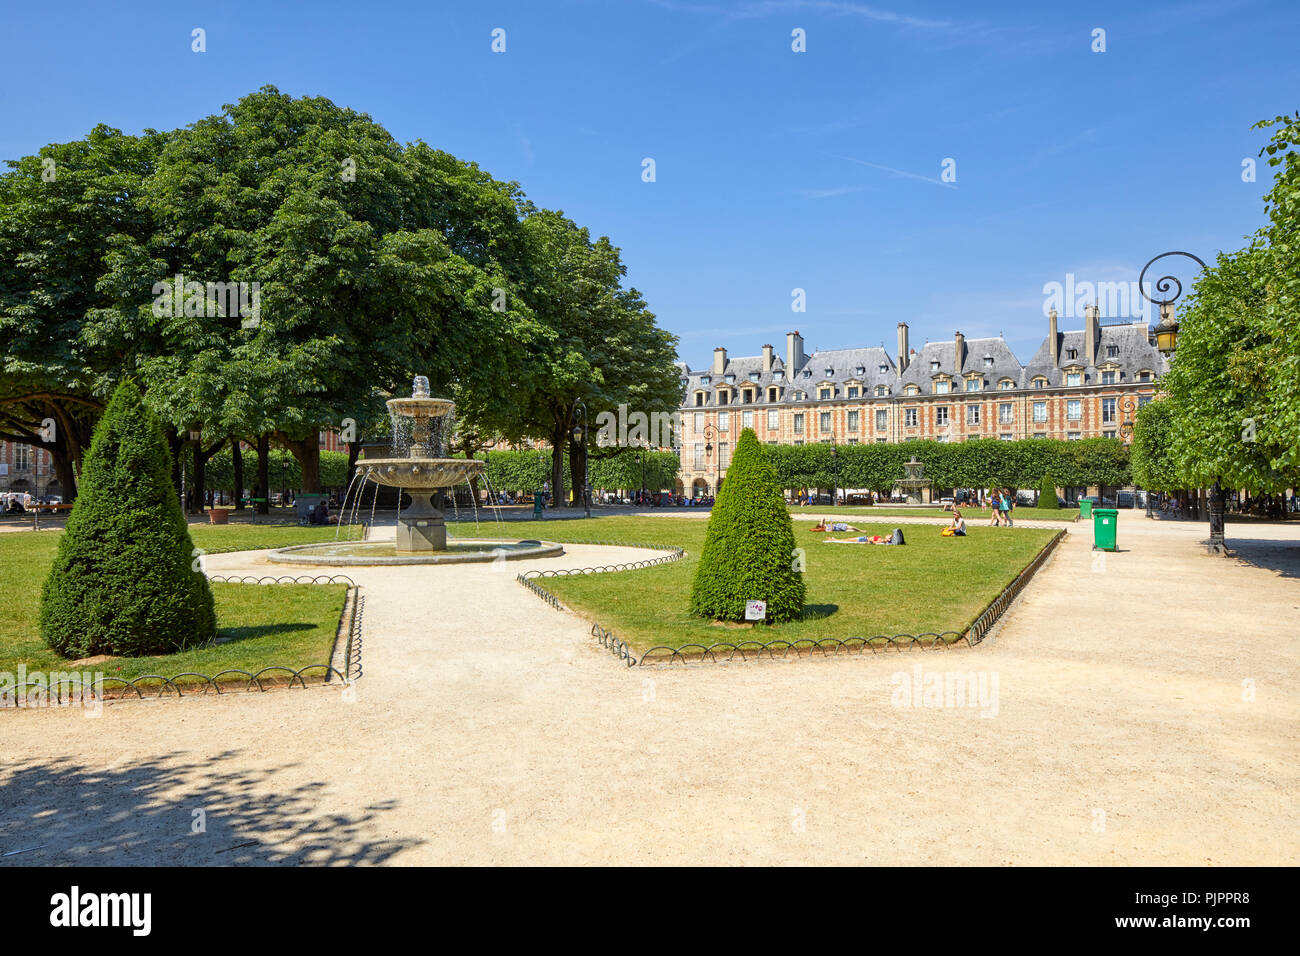 Northeastern Fountain by Jean-Pierre Cortot in Place des Vosges, Paris, France, Europe - Stock Image